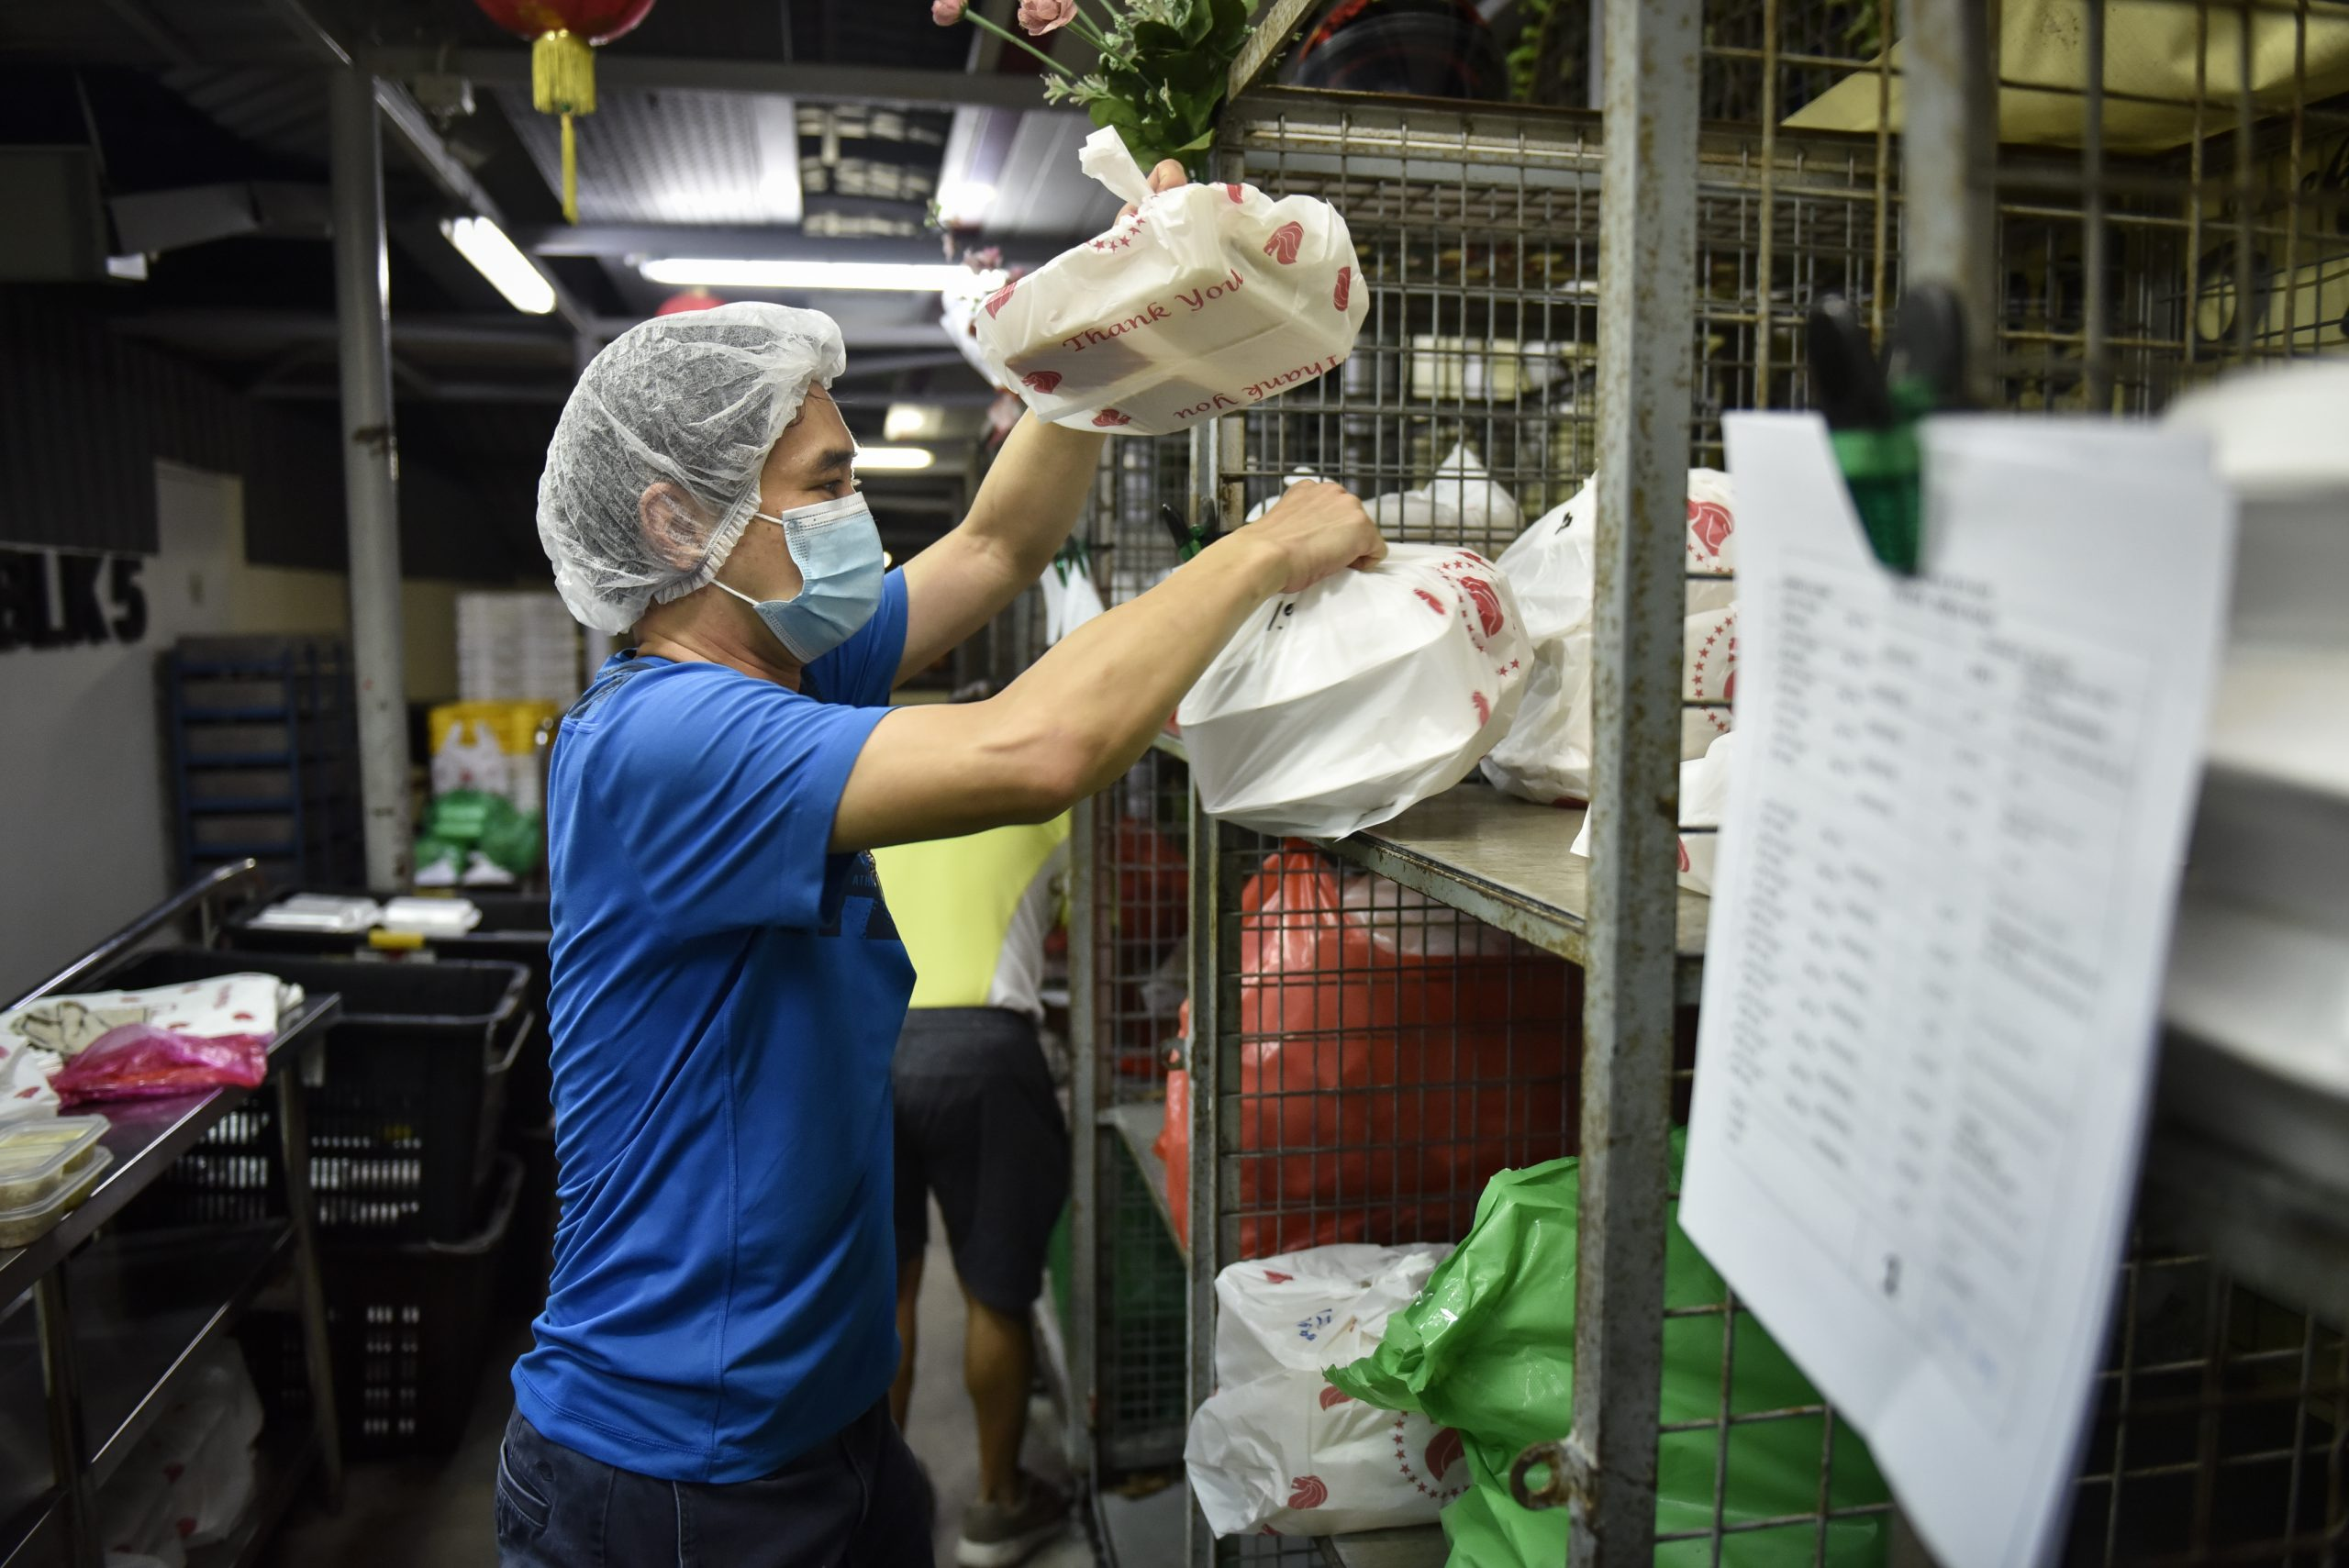 A volunteer sorts out the packets of food for loading into delivery vehicles.